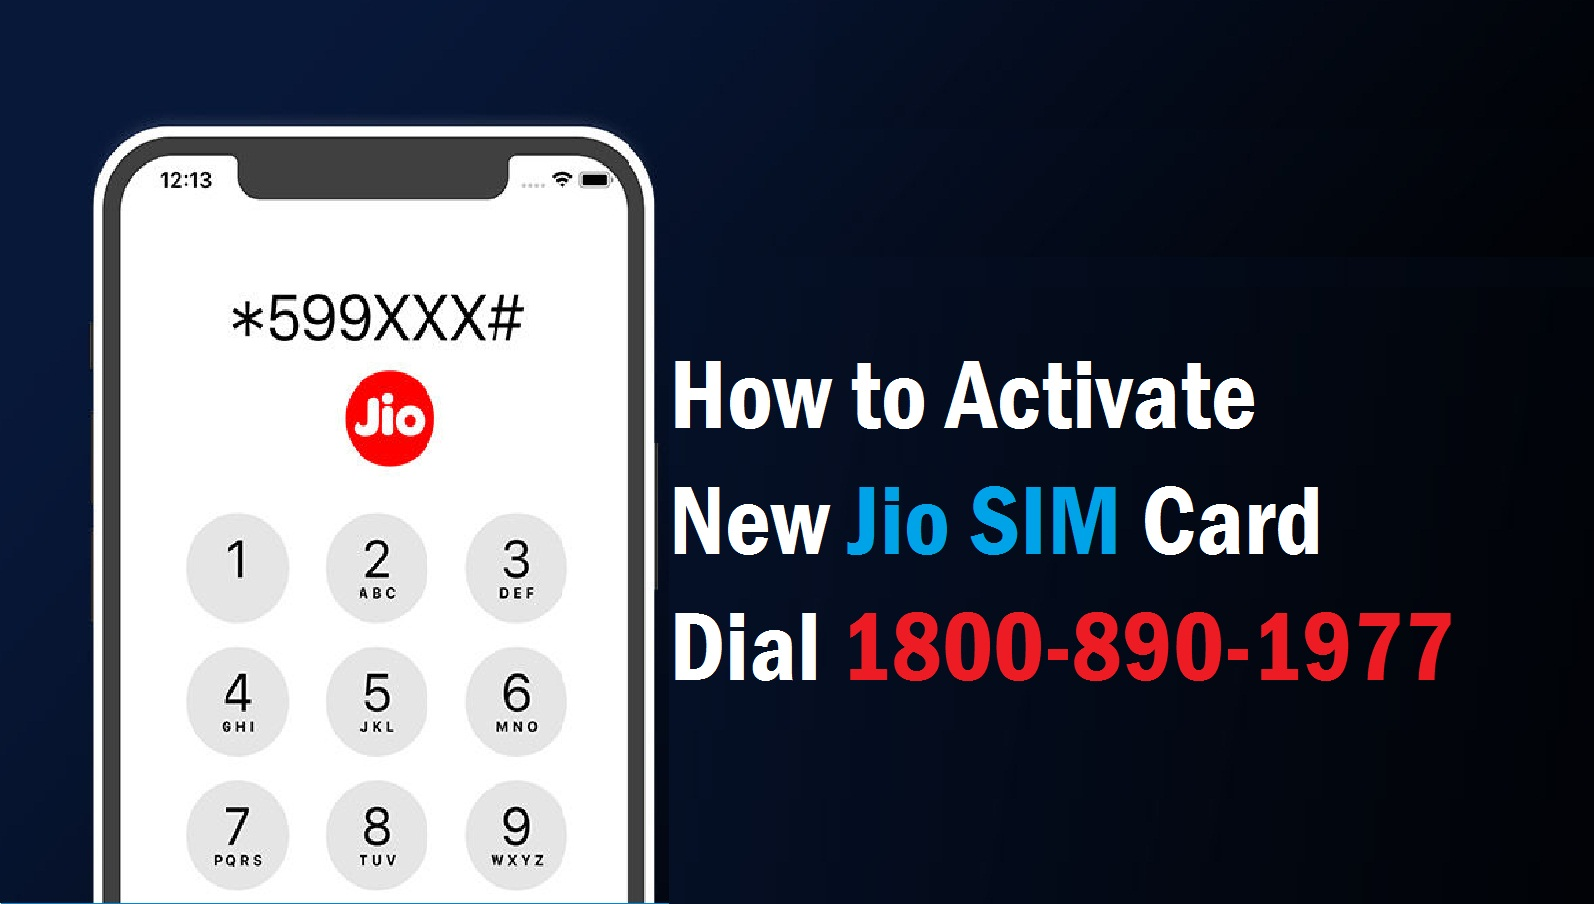 How to Activate New Jio SIM Card